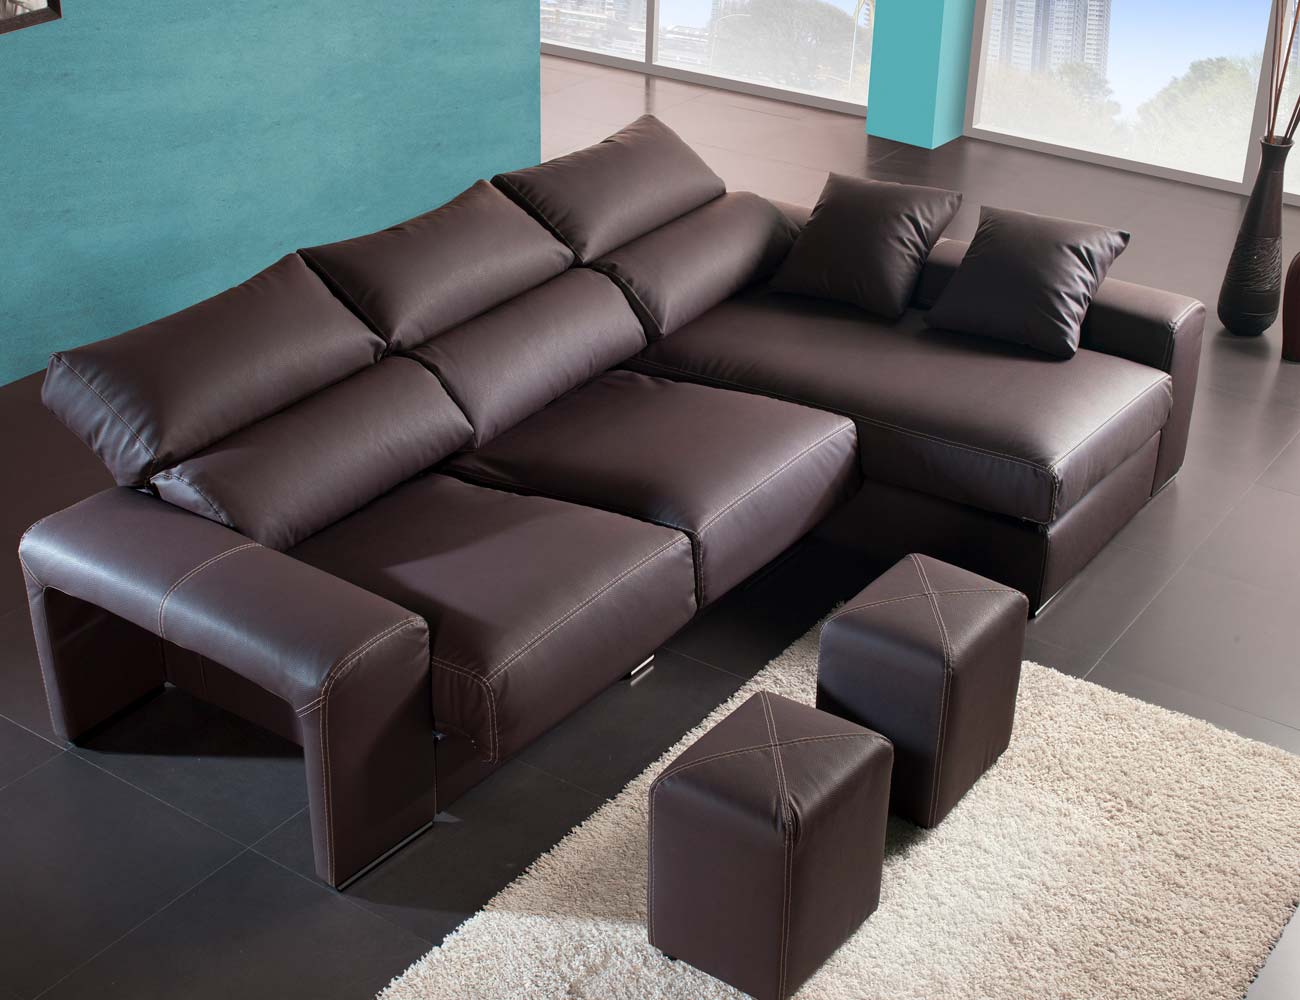 Sofa chaiselongue moderno polipiel chocolate poufs taburetes14